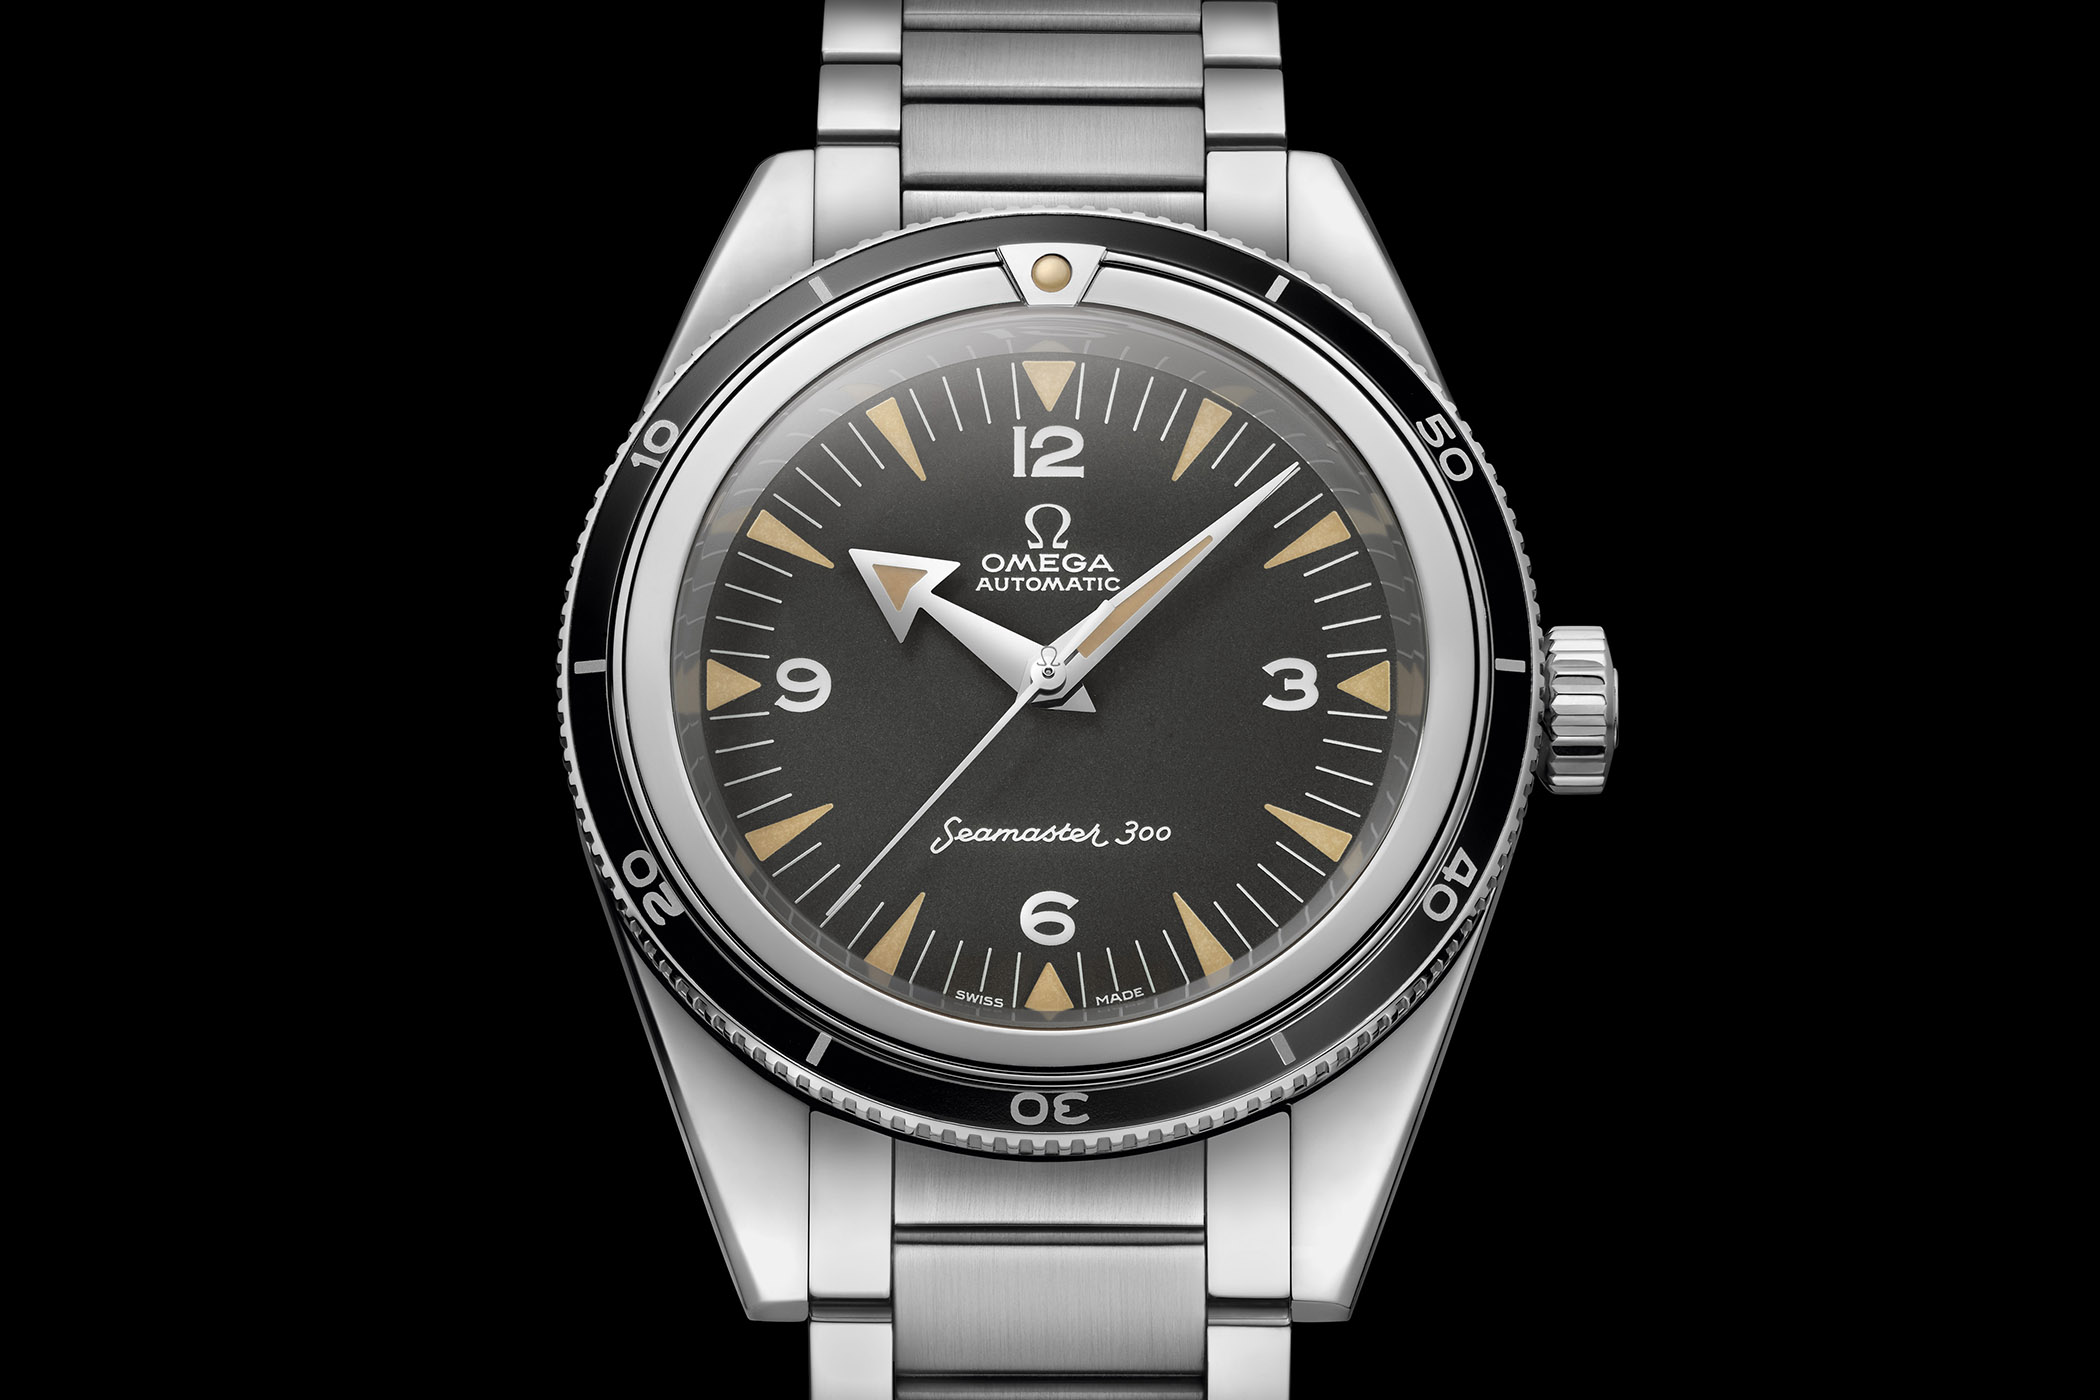 The Seamaster 30060th Anniversary 39mm